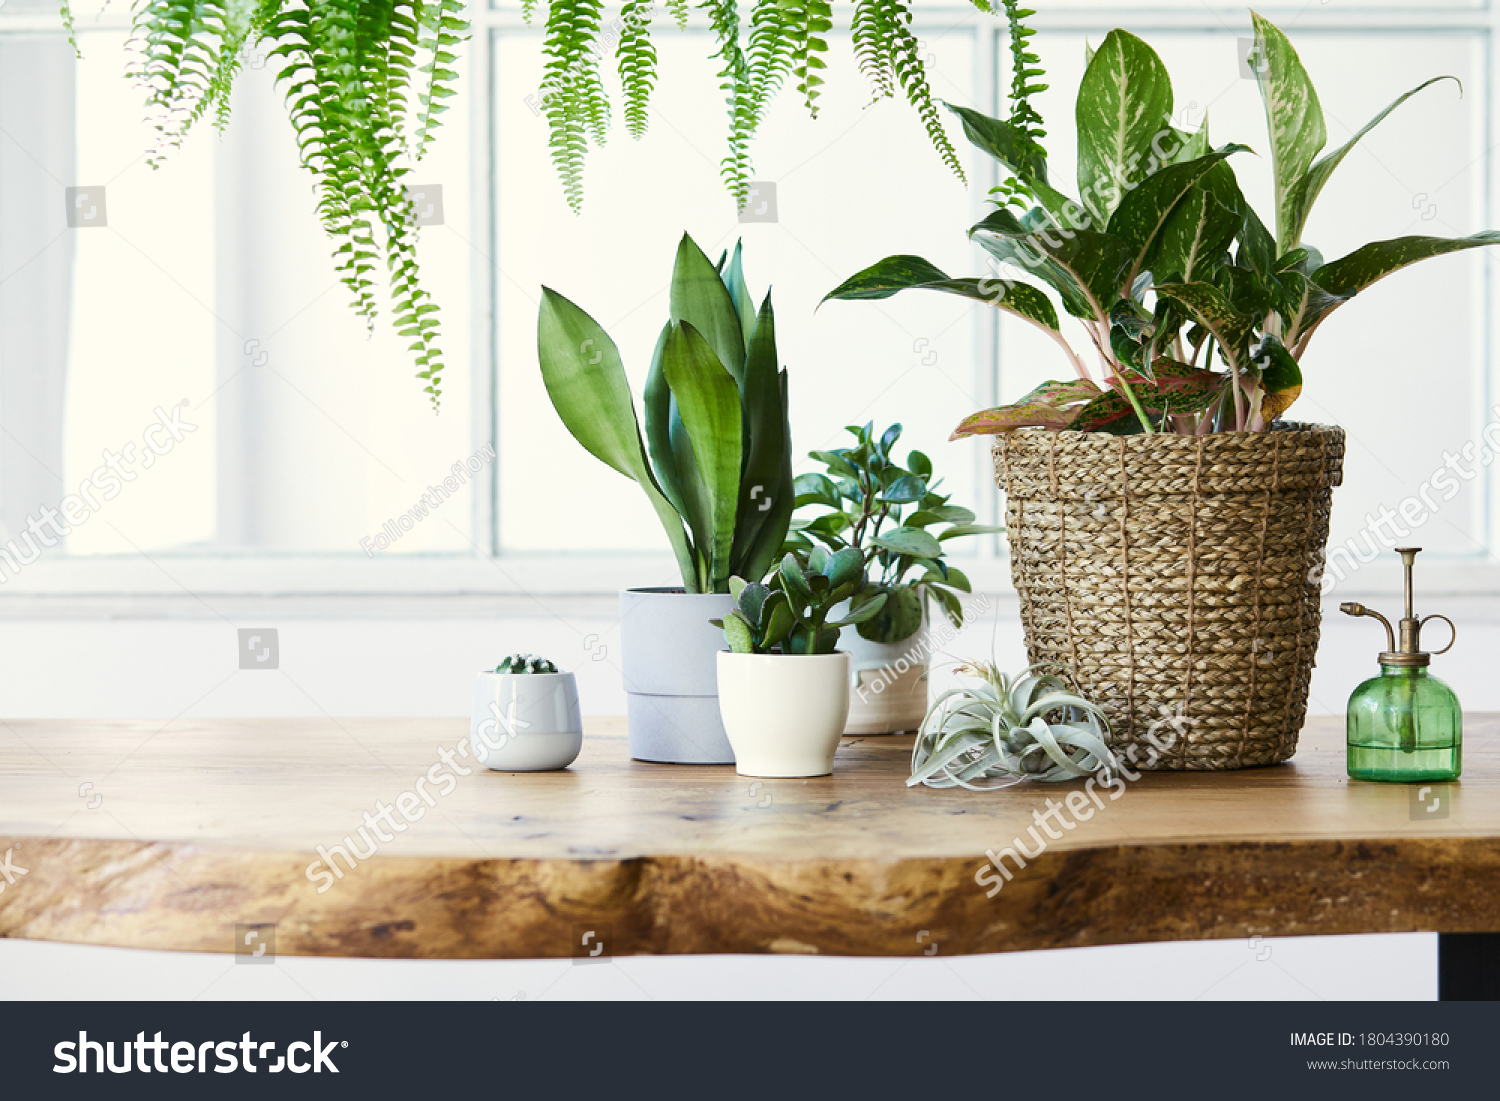 Modern composition of home garden filled a lot of beautiful plants, cacti, succulents, air plant in different design pots. Stylish botany interior. . Home gardening concept. Template. #1804390180